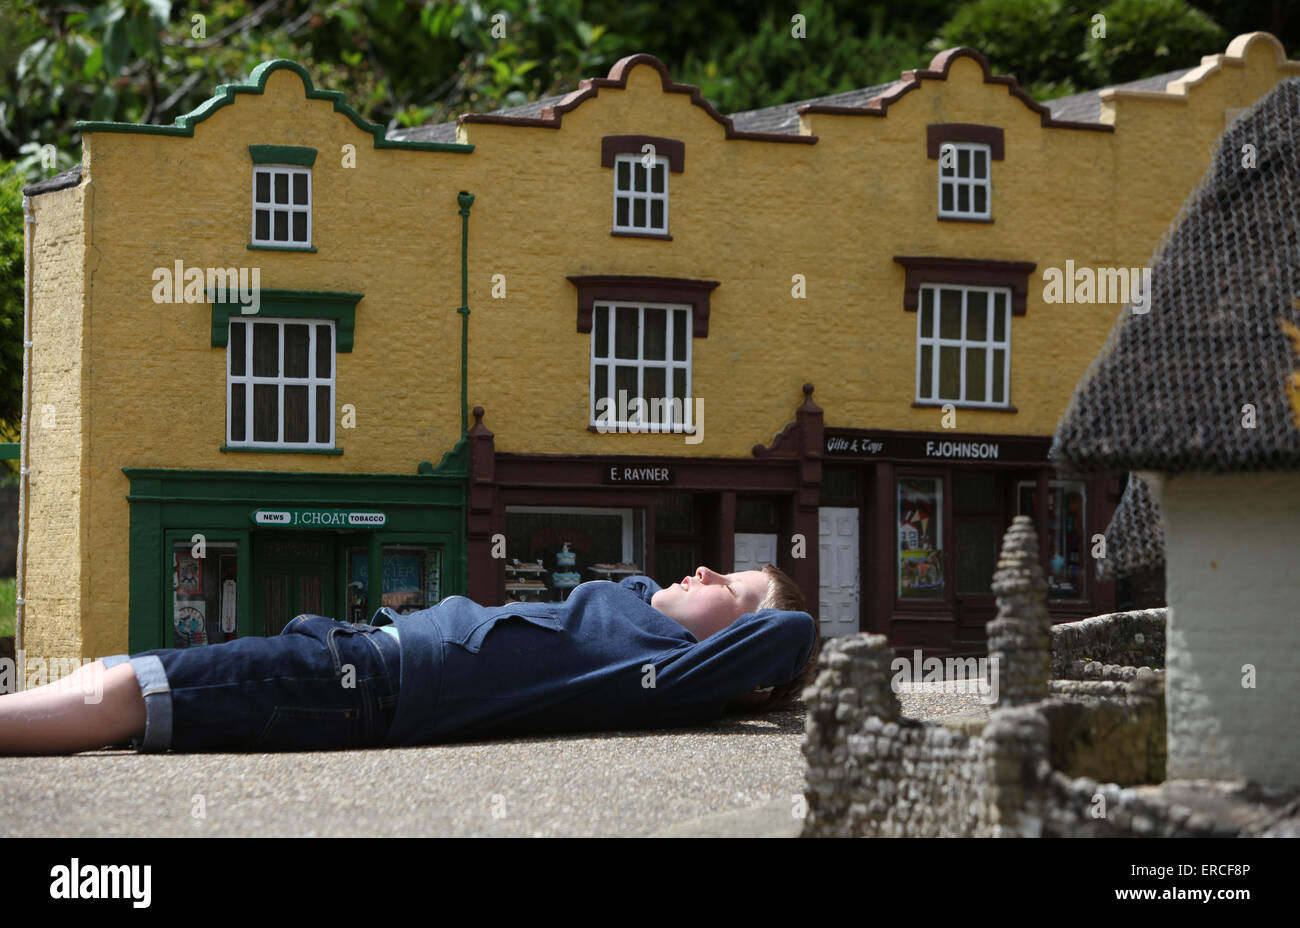 A boy relaxing in the sunshine during a visit to The Model Village in Godshill on the Isle of Wight - Stock Image